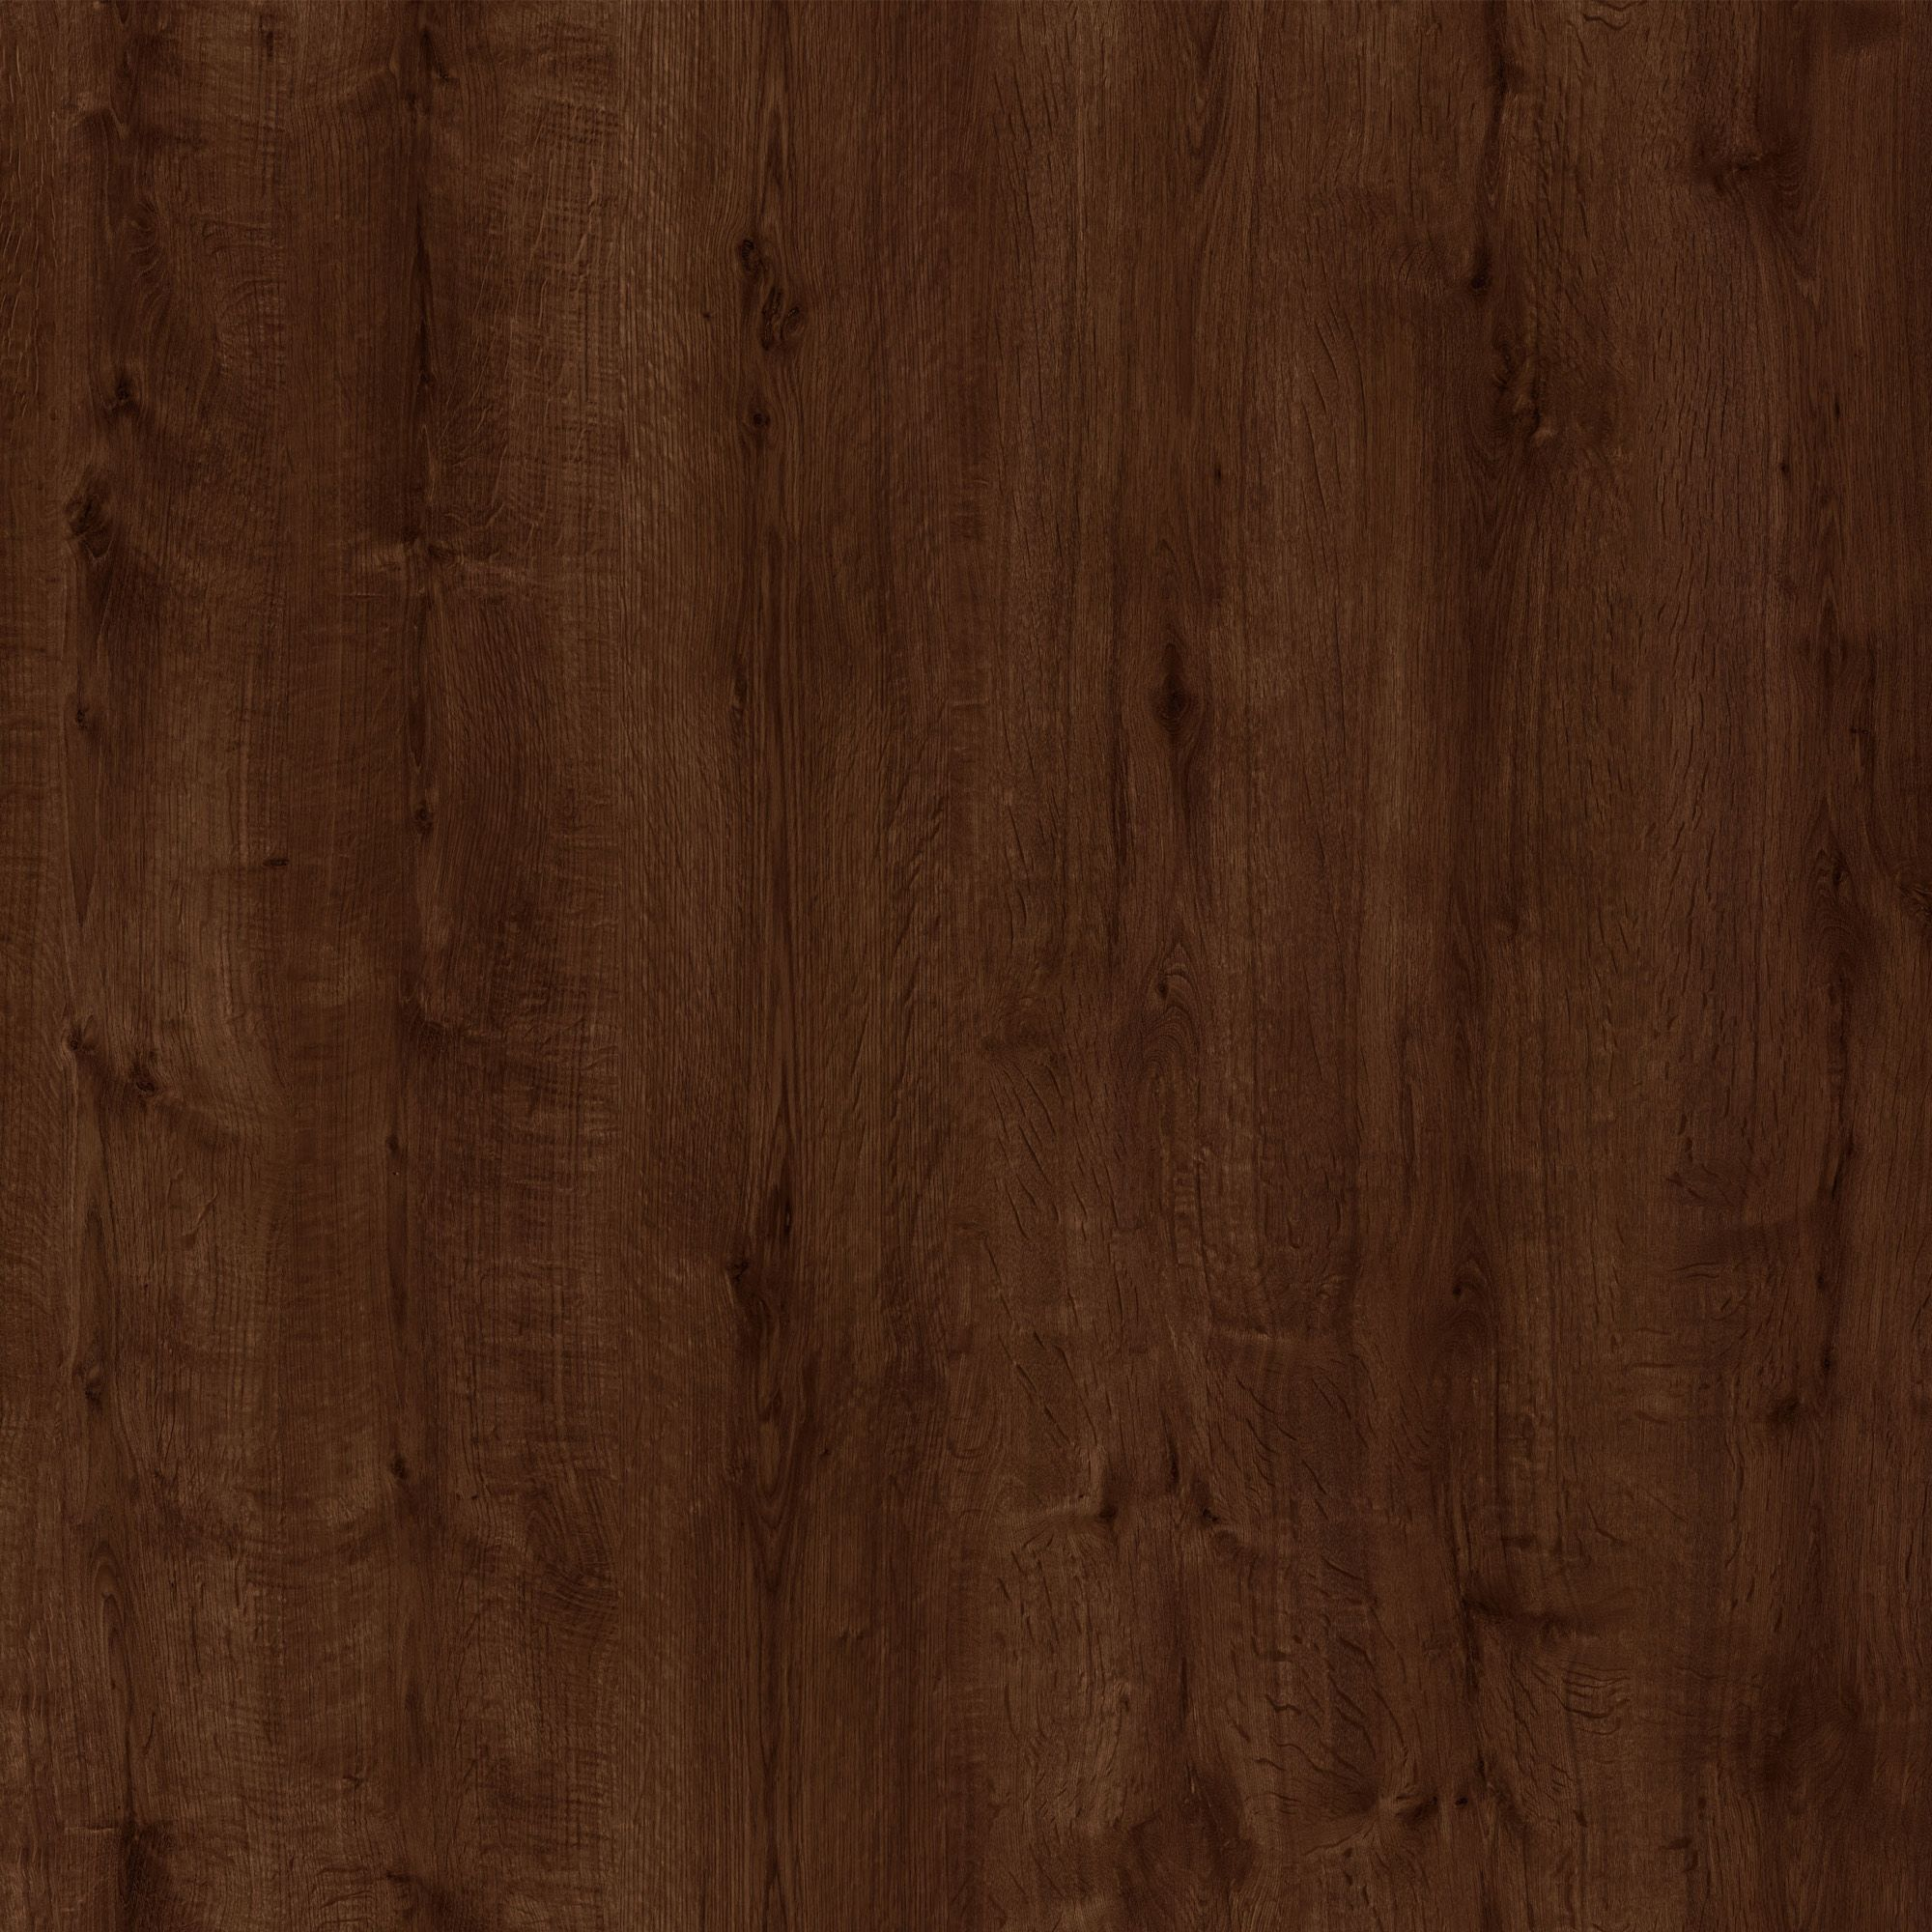 Concertino Natural Prestige Dark Oak Effect Laminate